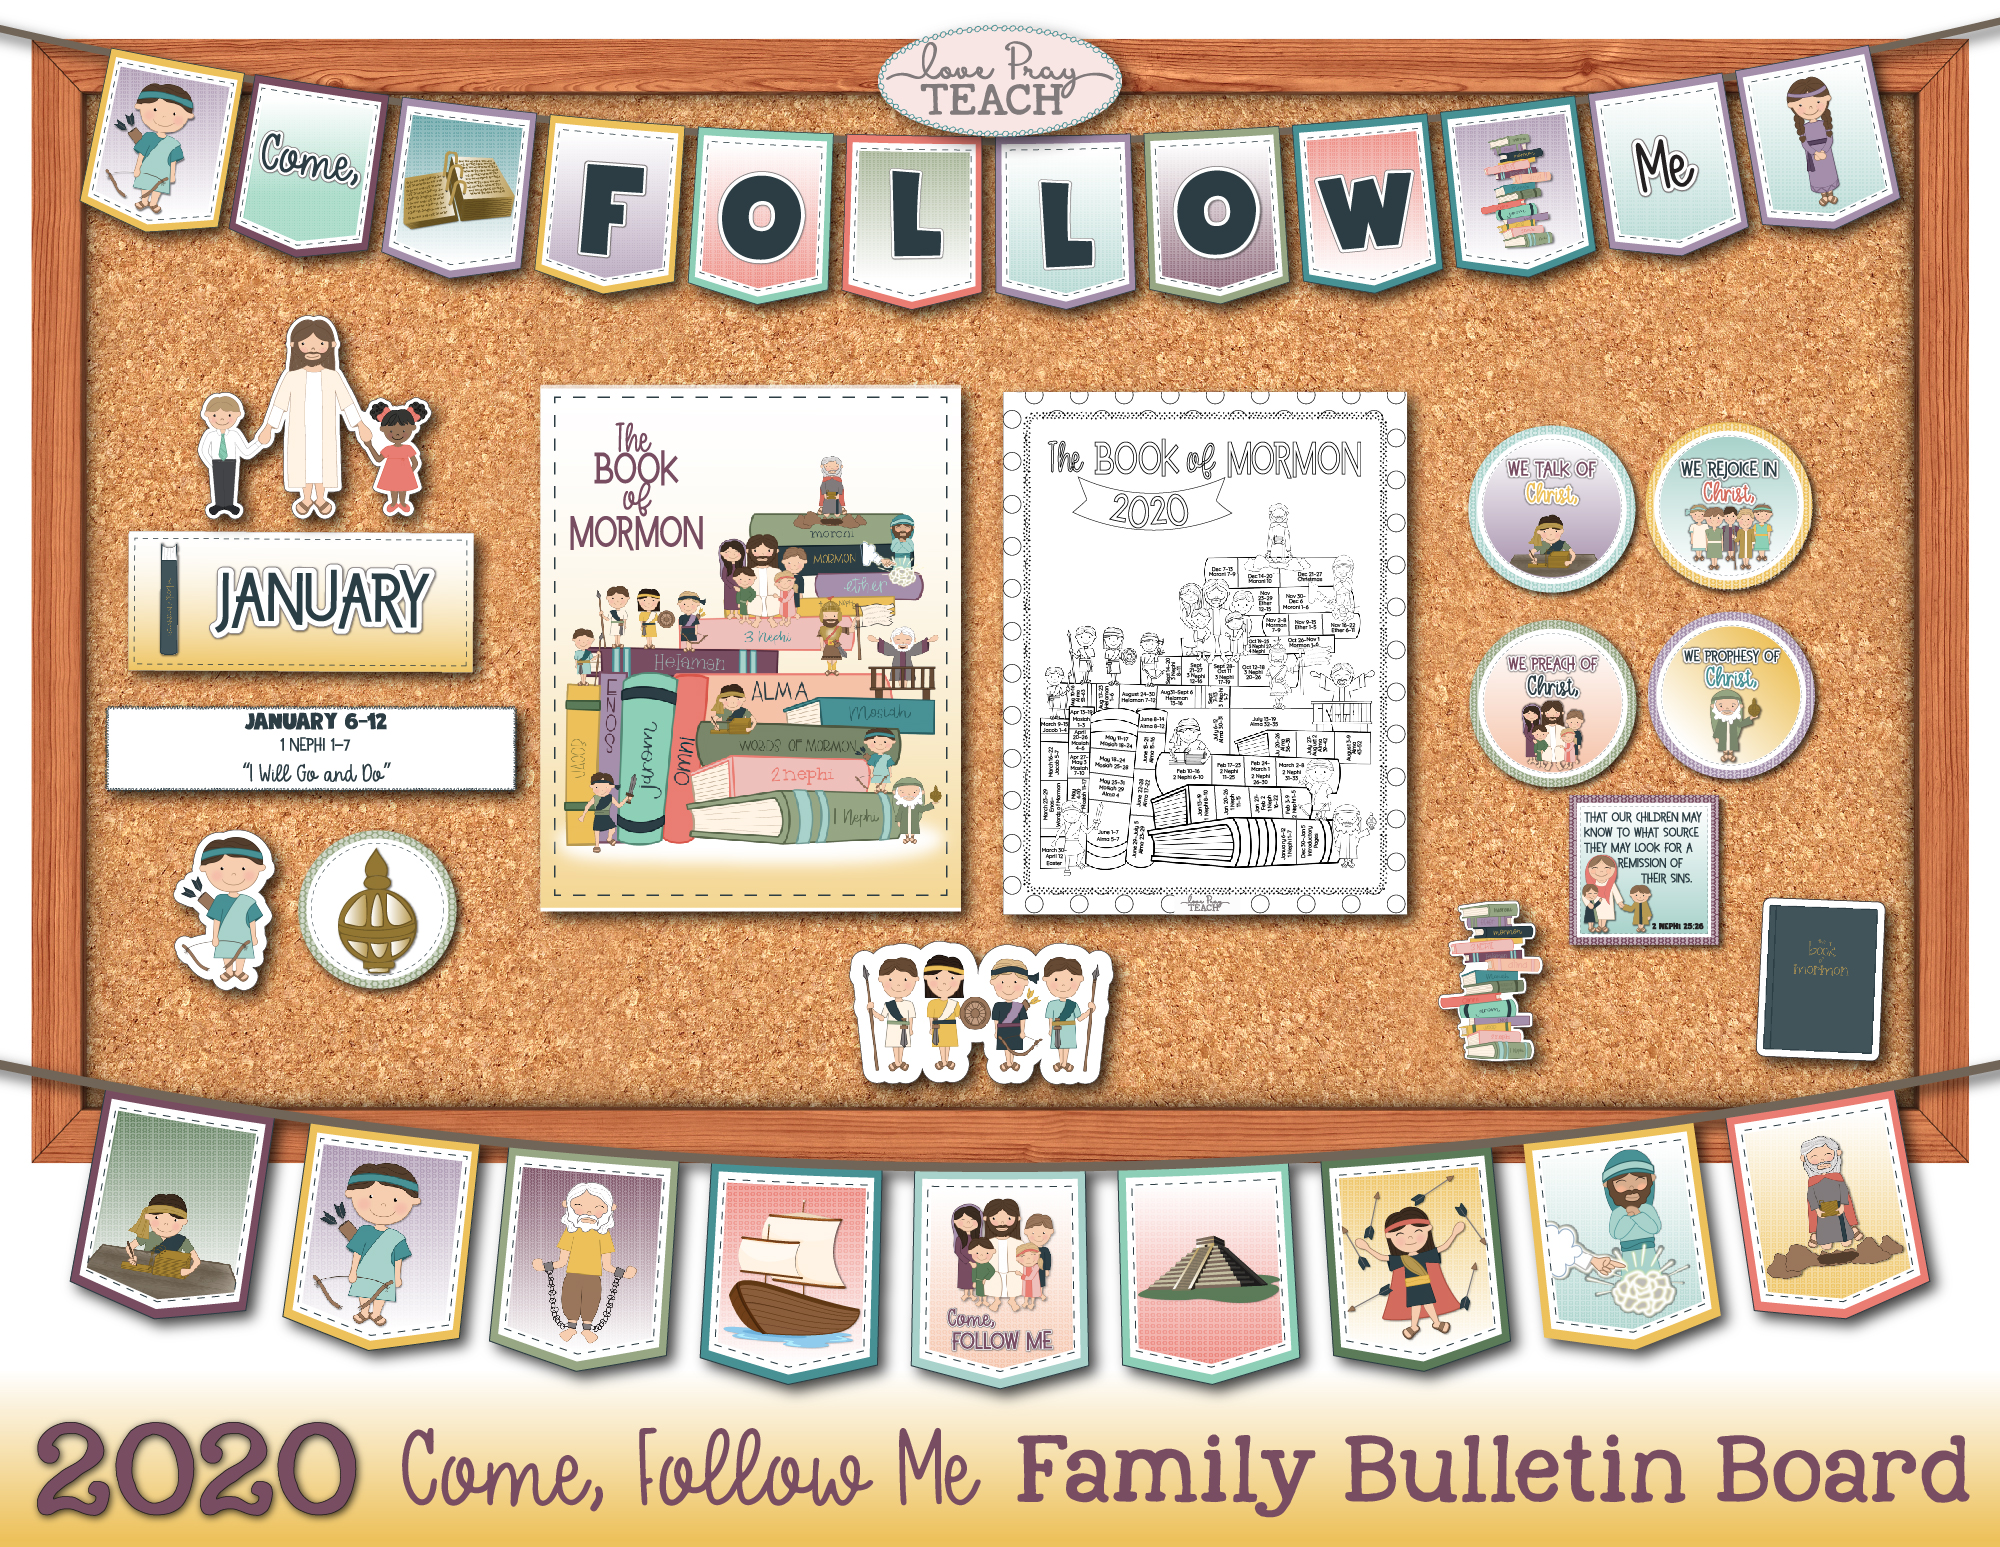 2020 Come, Follow Me Book of Mormon Family Bulletin Board Printable Packet! www.LovePrayTeach.com